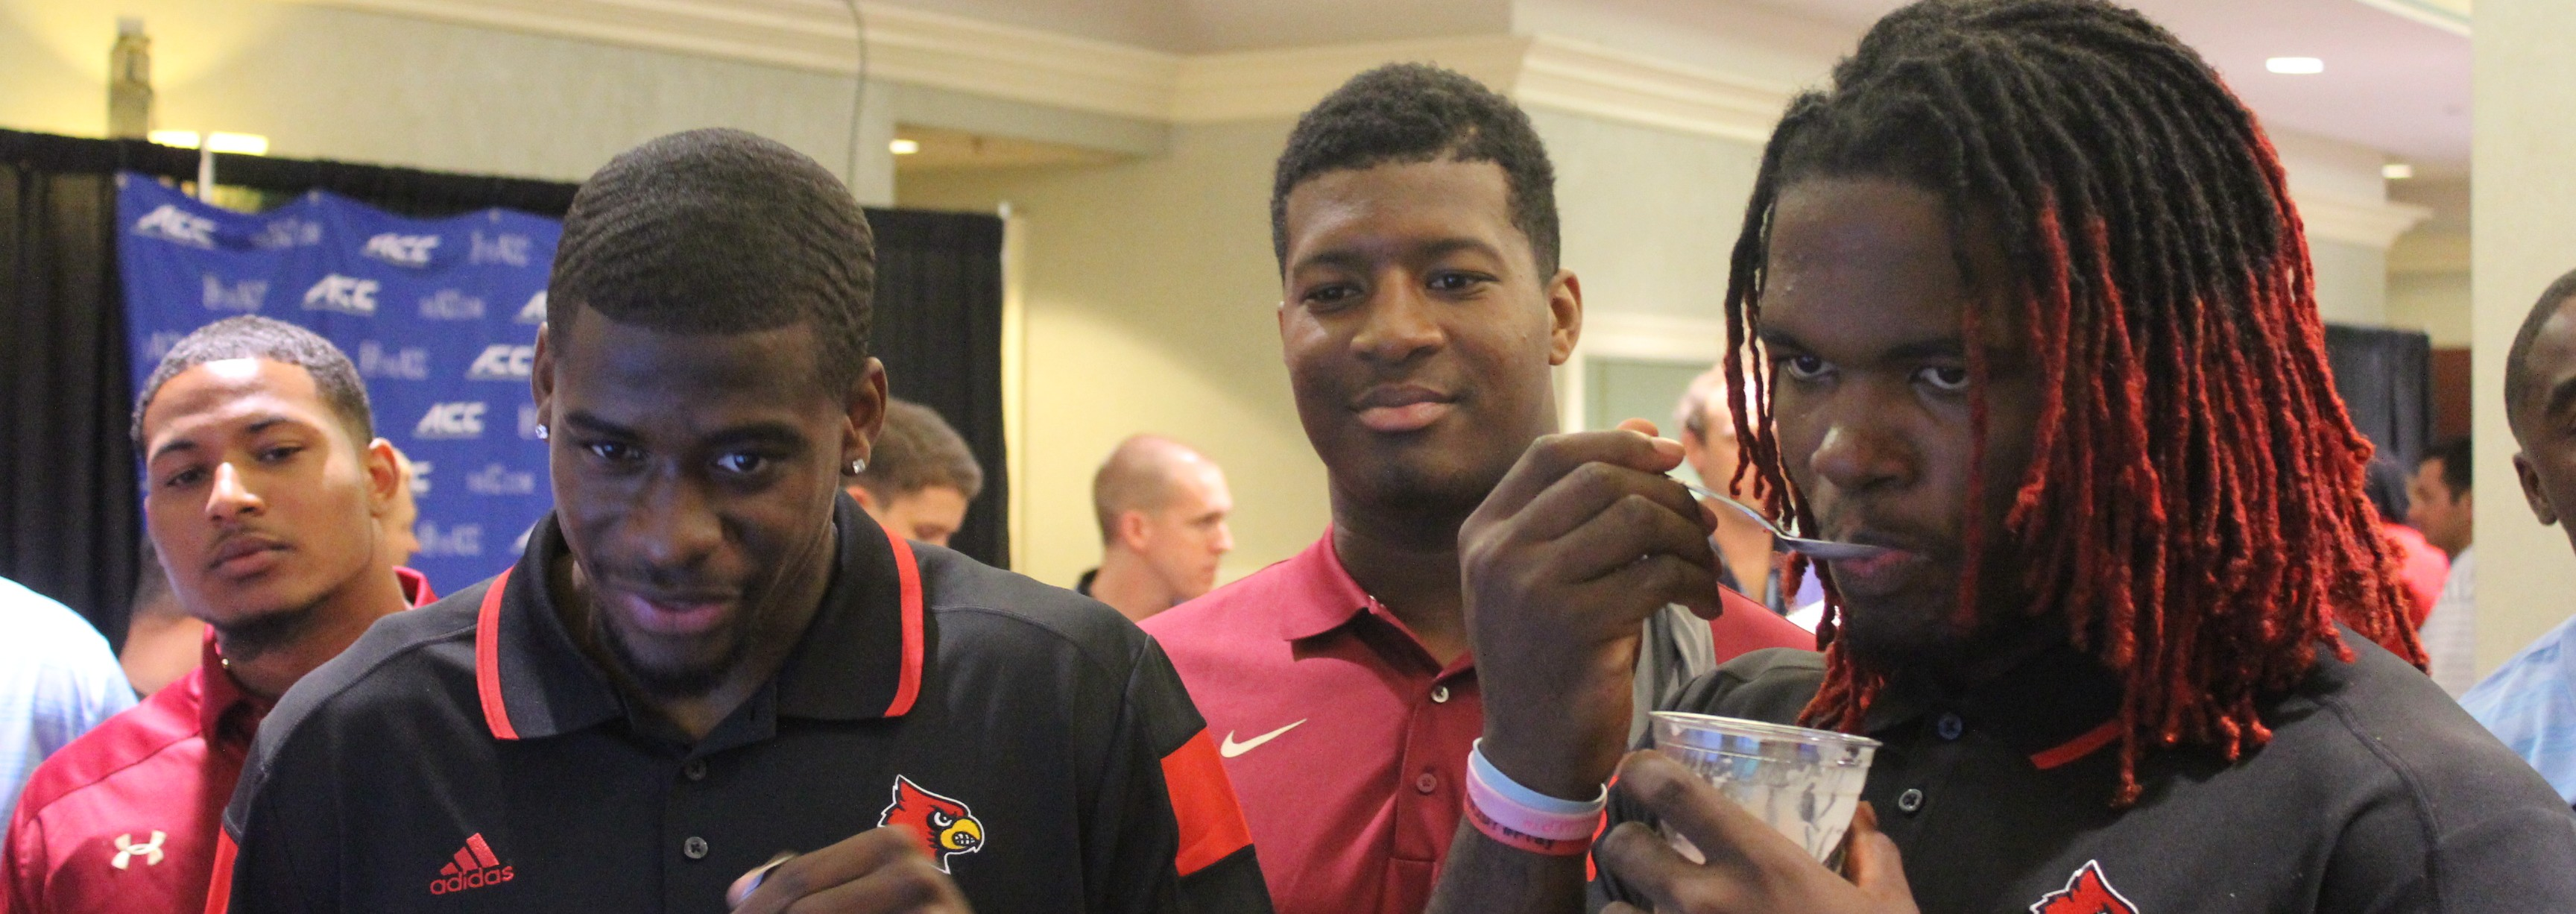 DeVante Parker, Lorenzo Mauldin, & Jameis WInston at 2014 ACC Kickoff Ice Cream Social Photo by Mark Blankenbaker